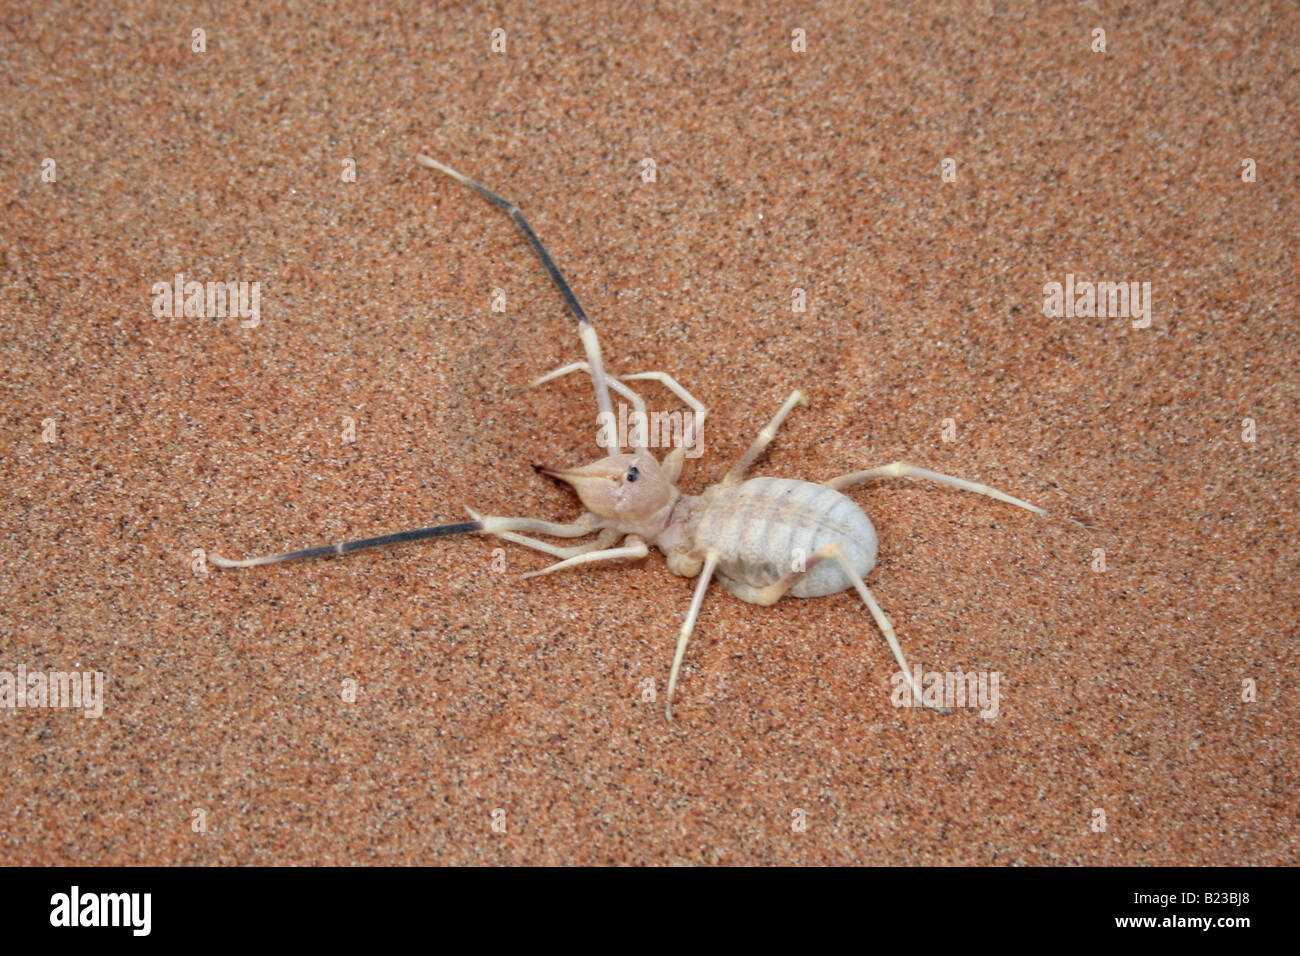 Camel spider, Wahiba Sands, Sultanate of Oman - Stock Image